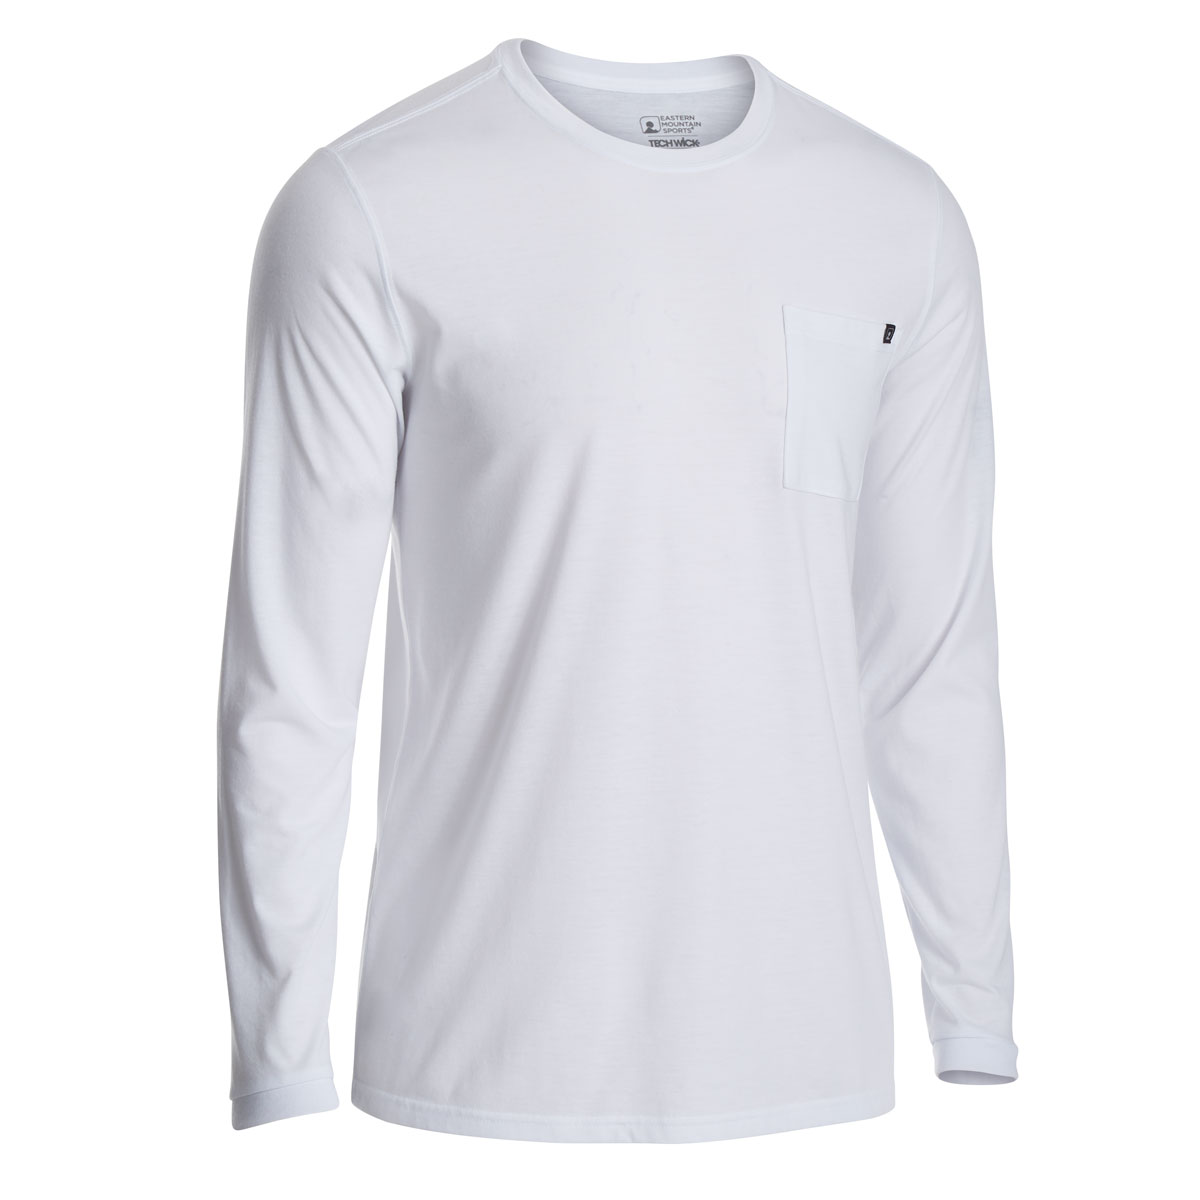 Ems Men's Techwick Vital Pocket Long-Sleeve Tee - White, M